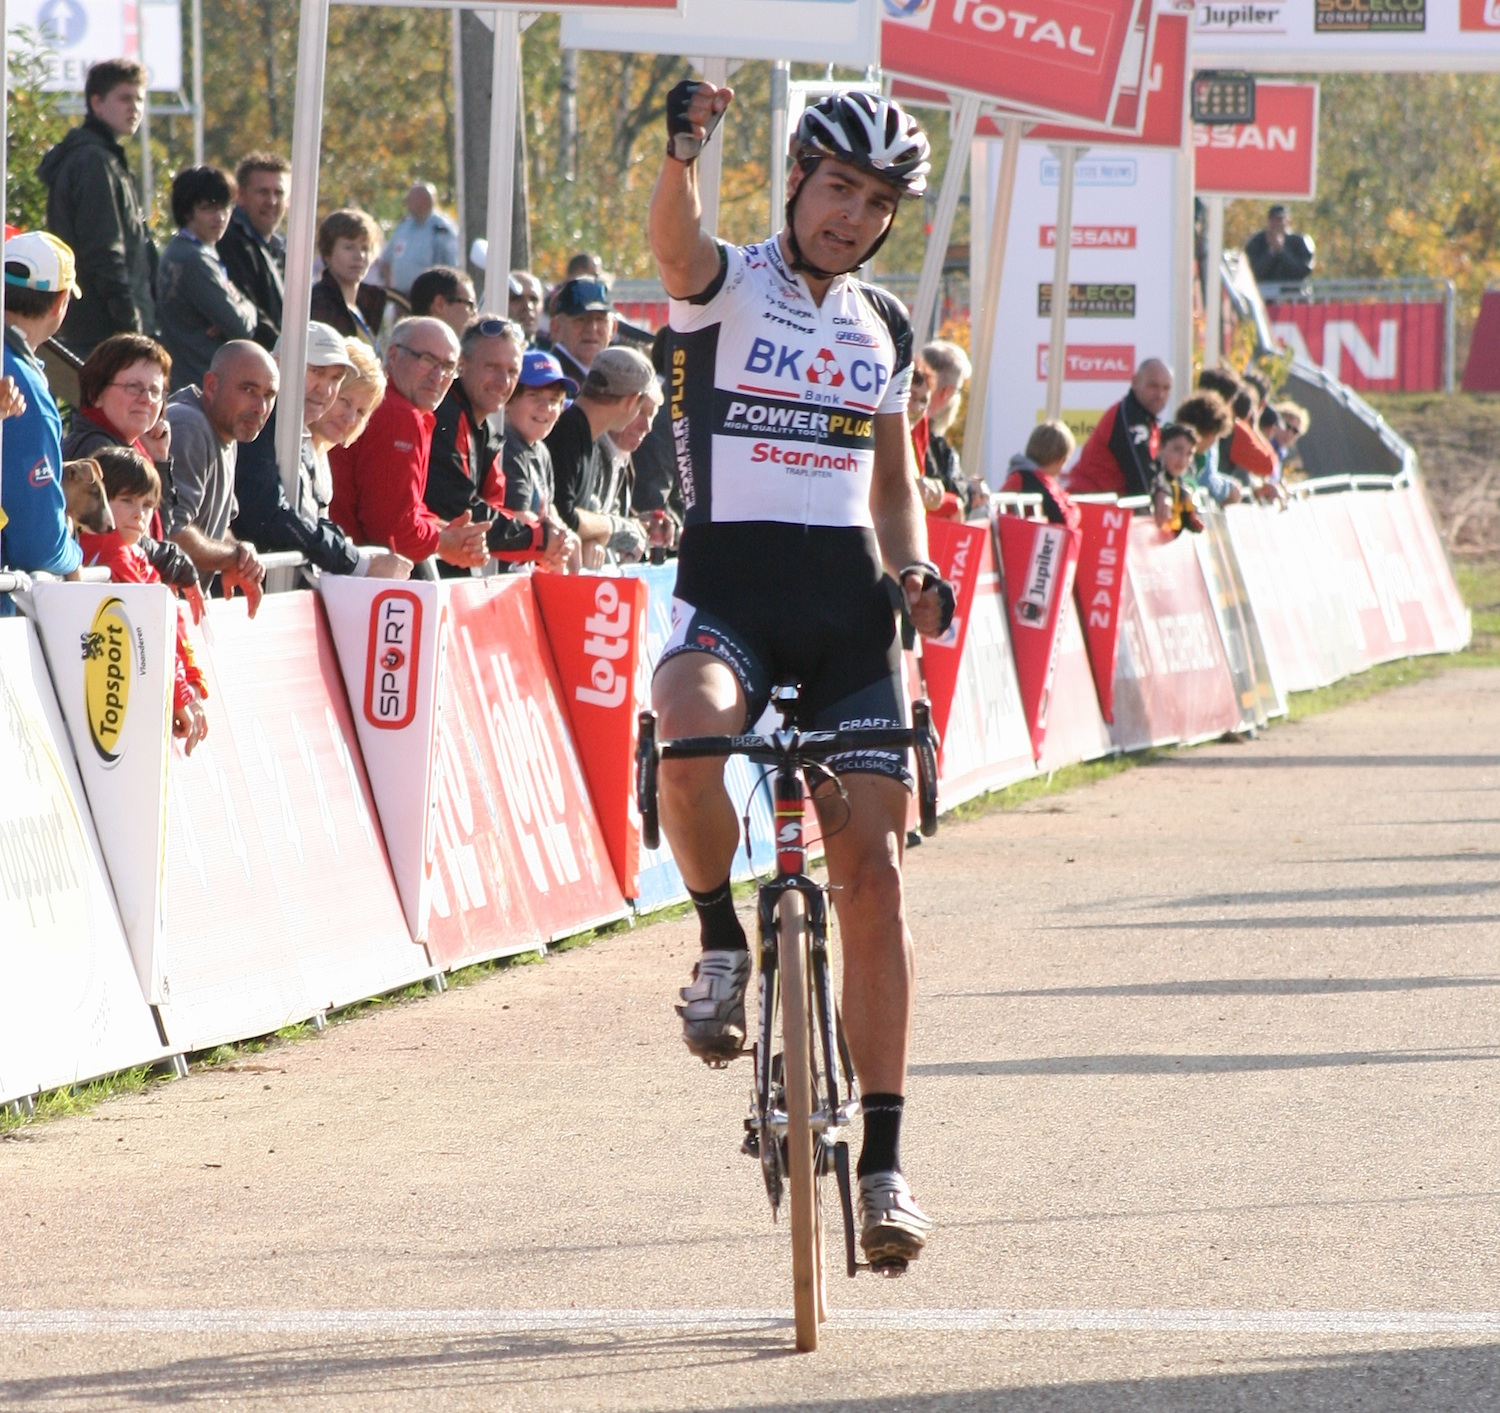 U23 Winner Wieste Bosmans at the finish©Greeg Germer